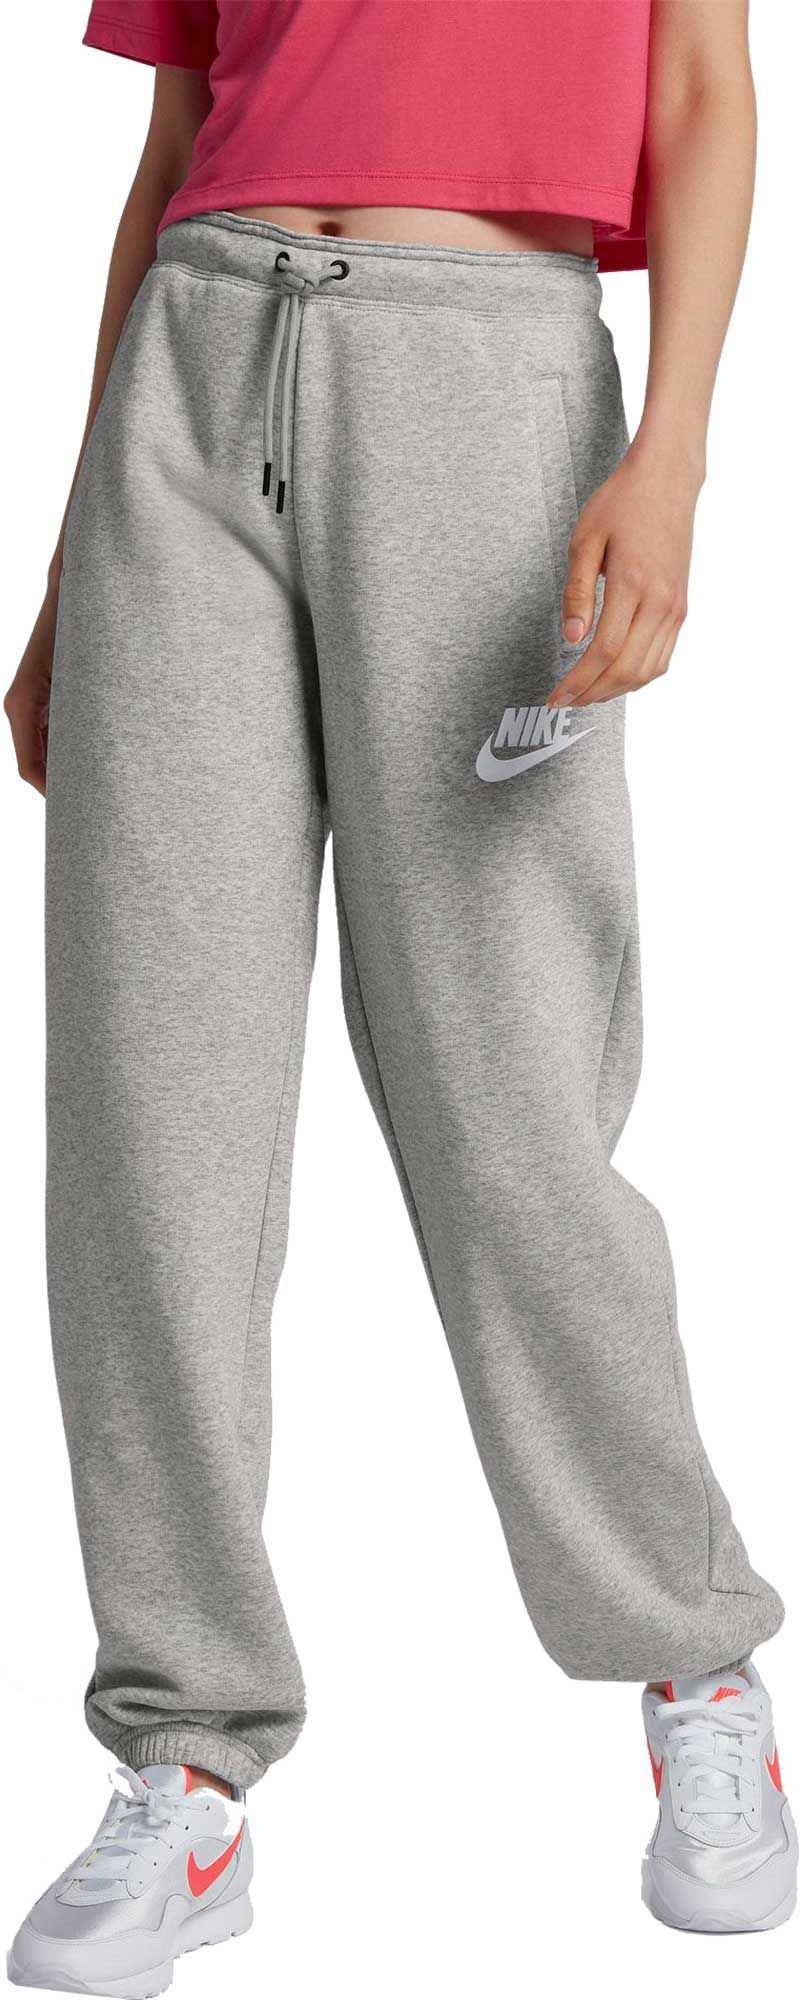 006d16beef Nike Women s Sportswear Rally Loose Fit Sweatpants